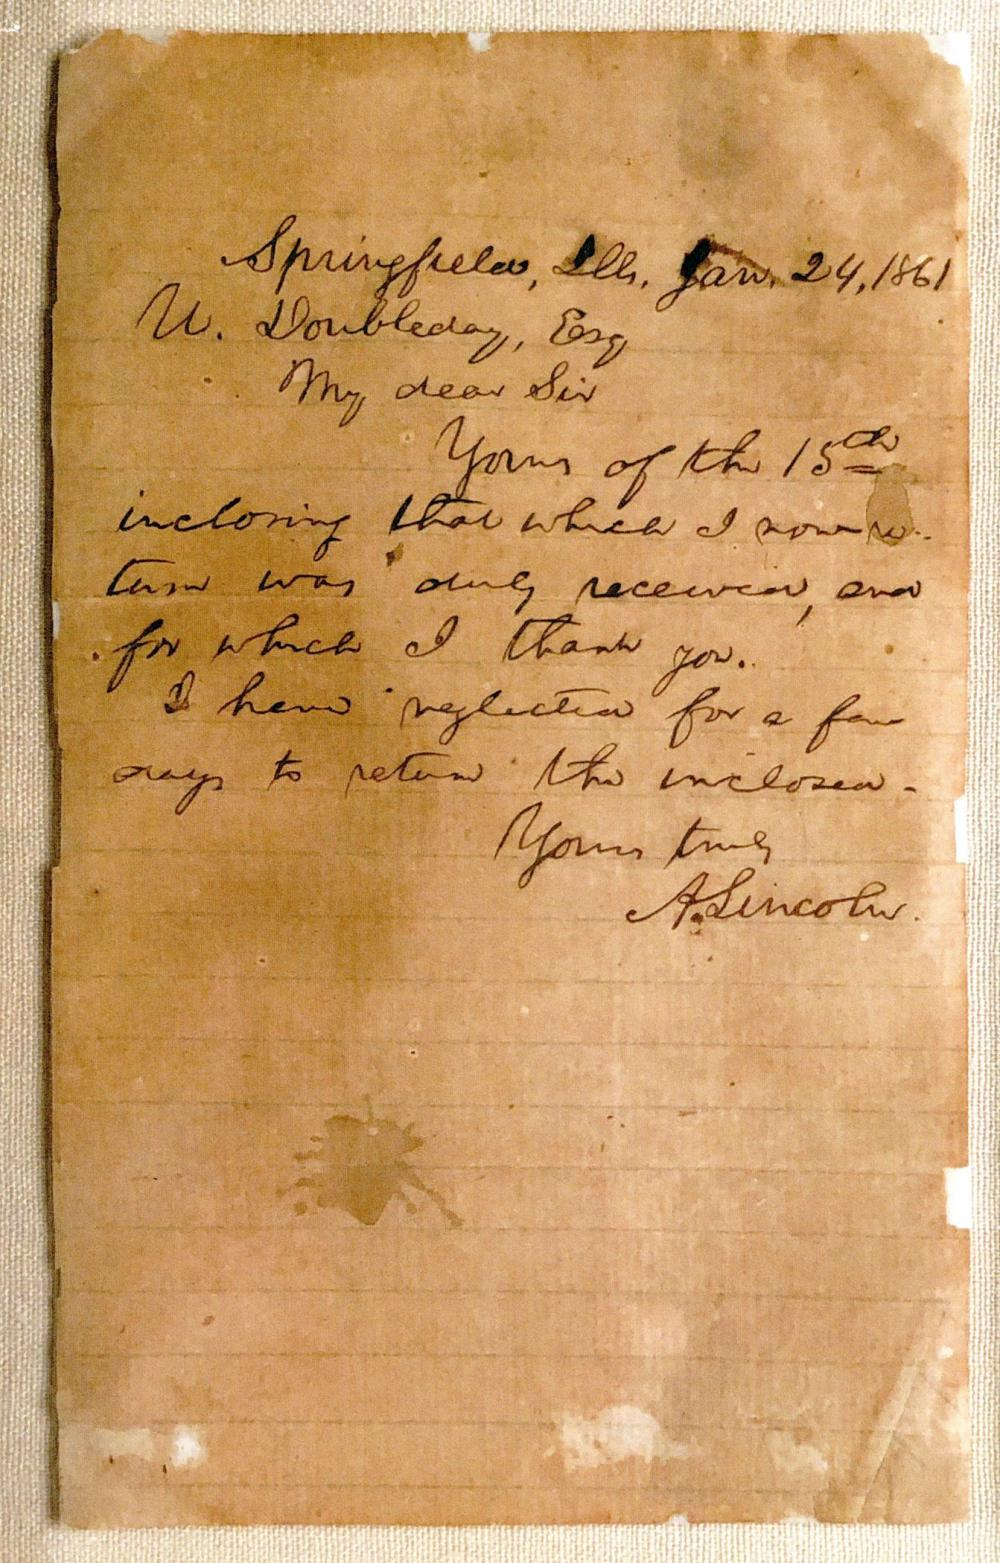 President-Elect Lincoln Gets Back-Channel Update from Fort Sumter